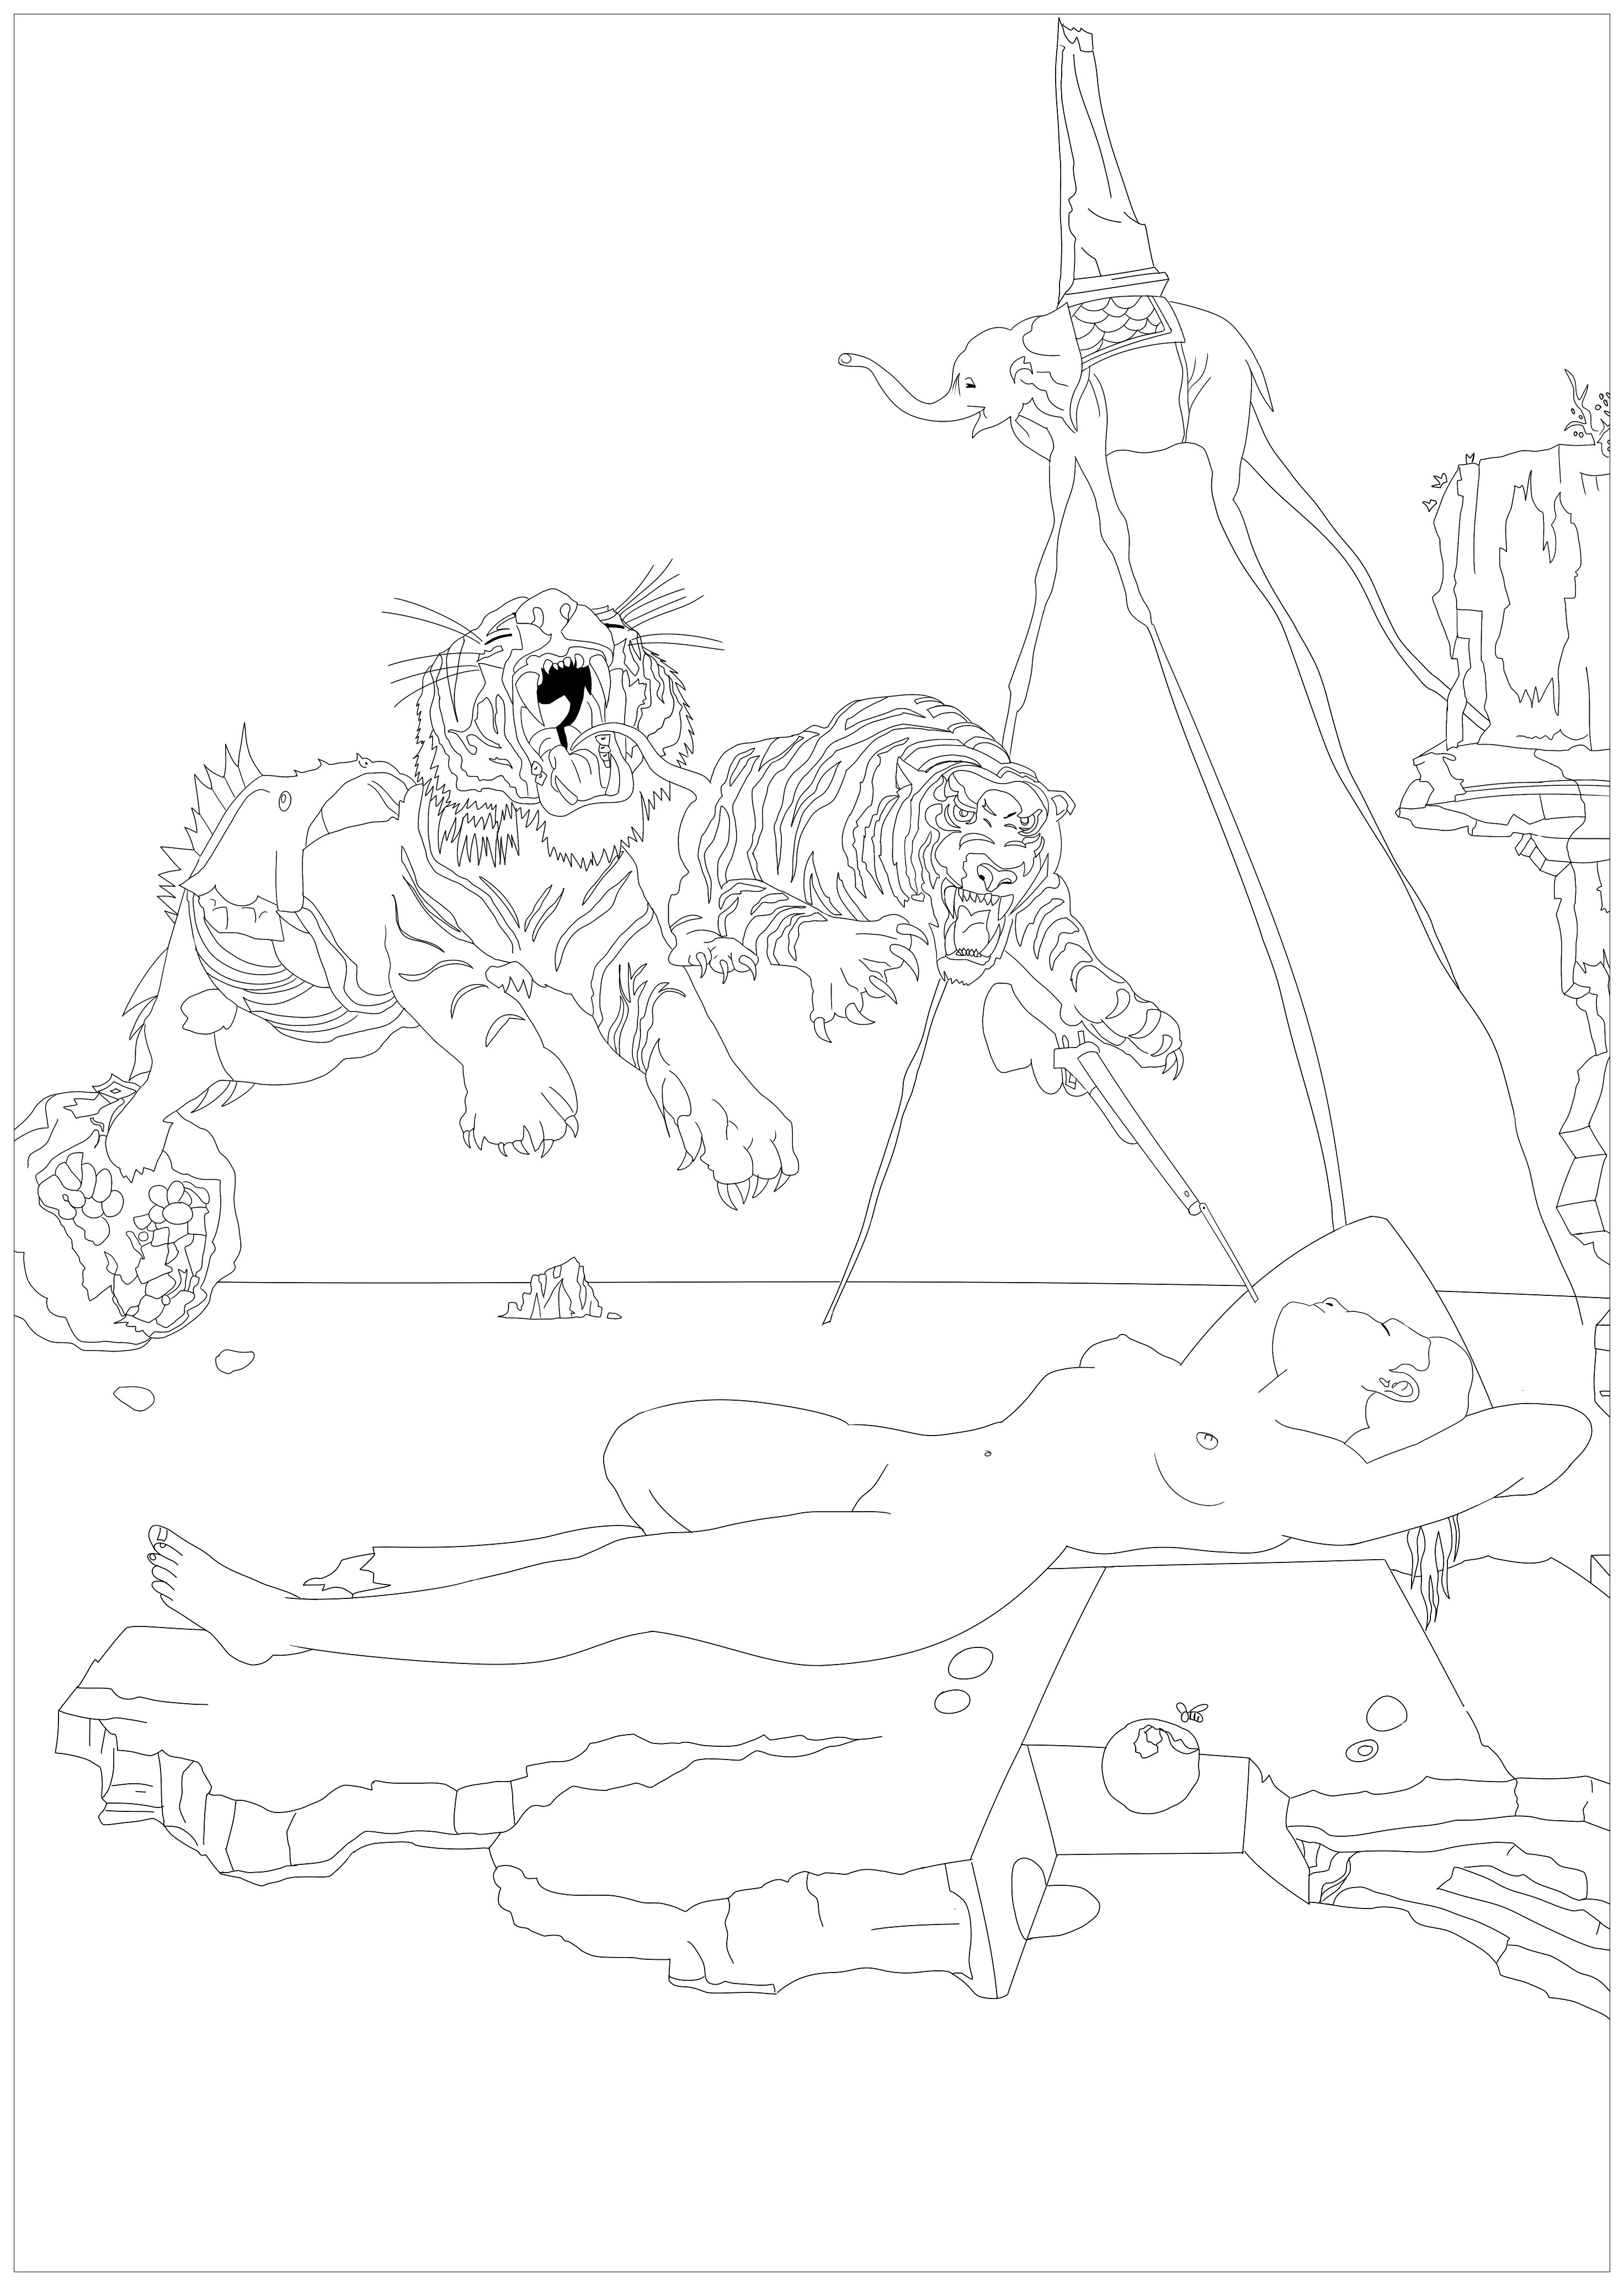 Dali coloring page to print and color